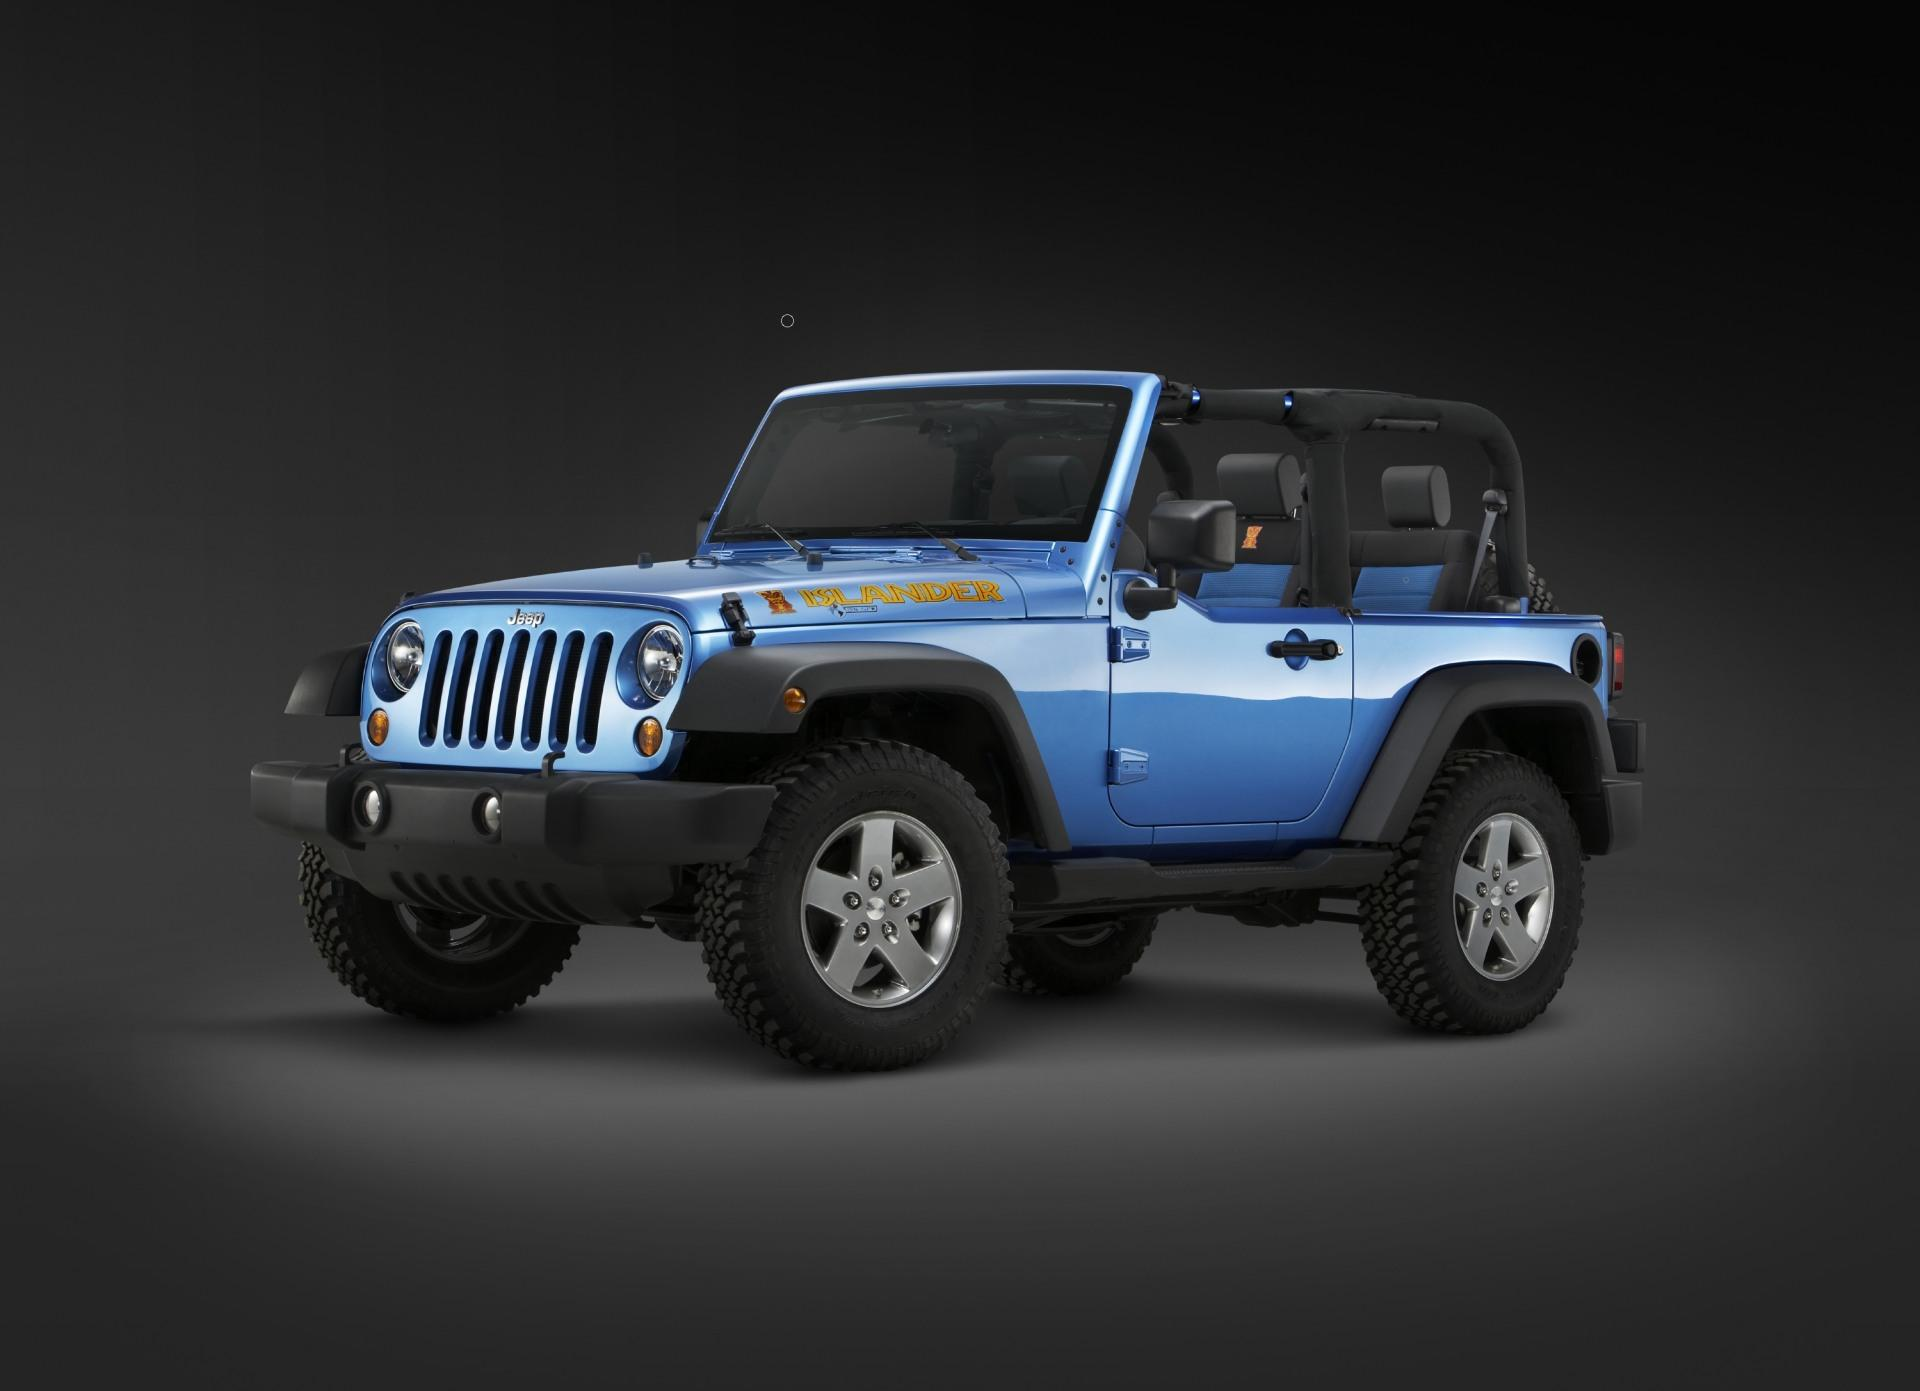 2010 Jeep Wrangler Islander Edition News and Information